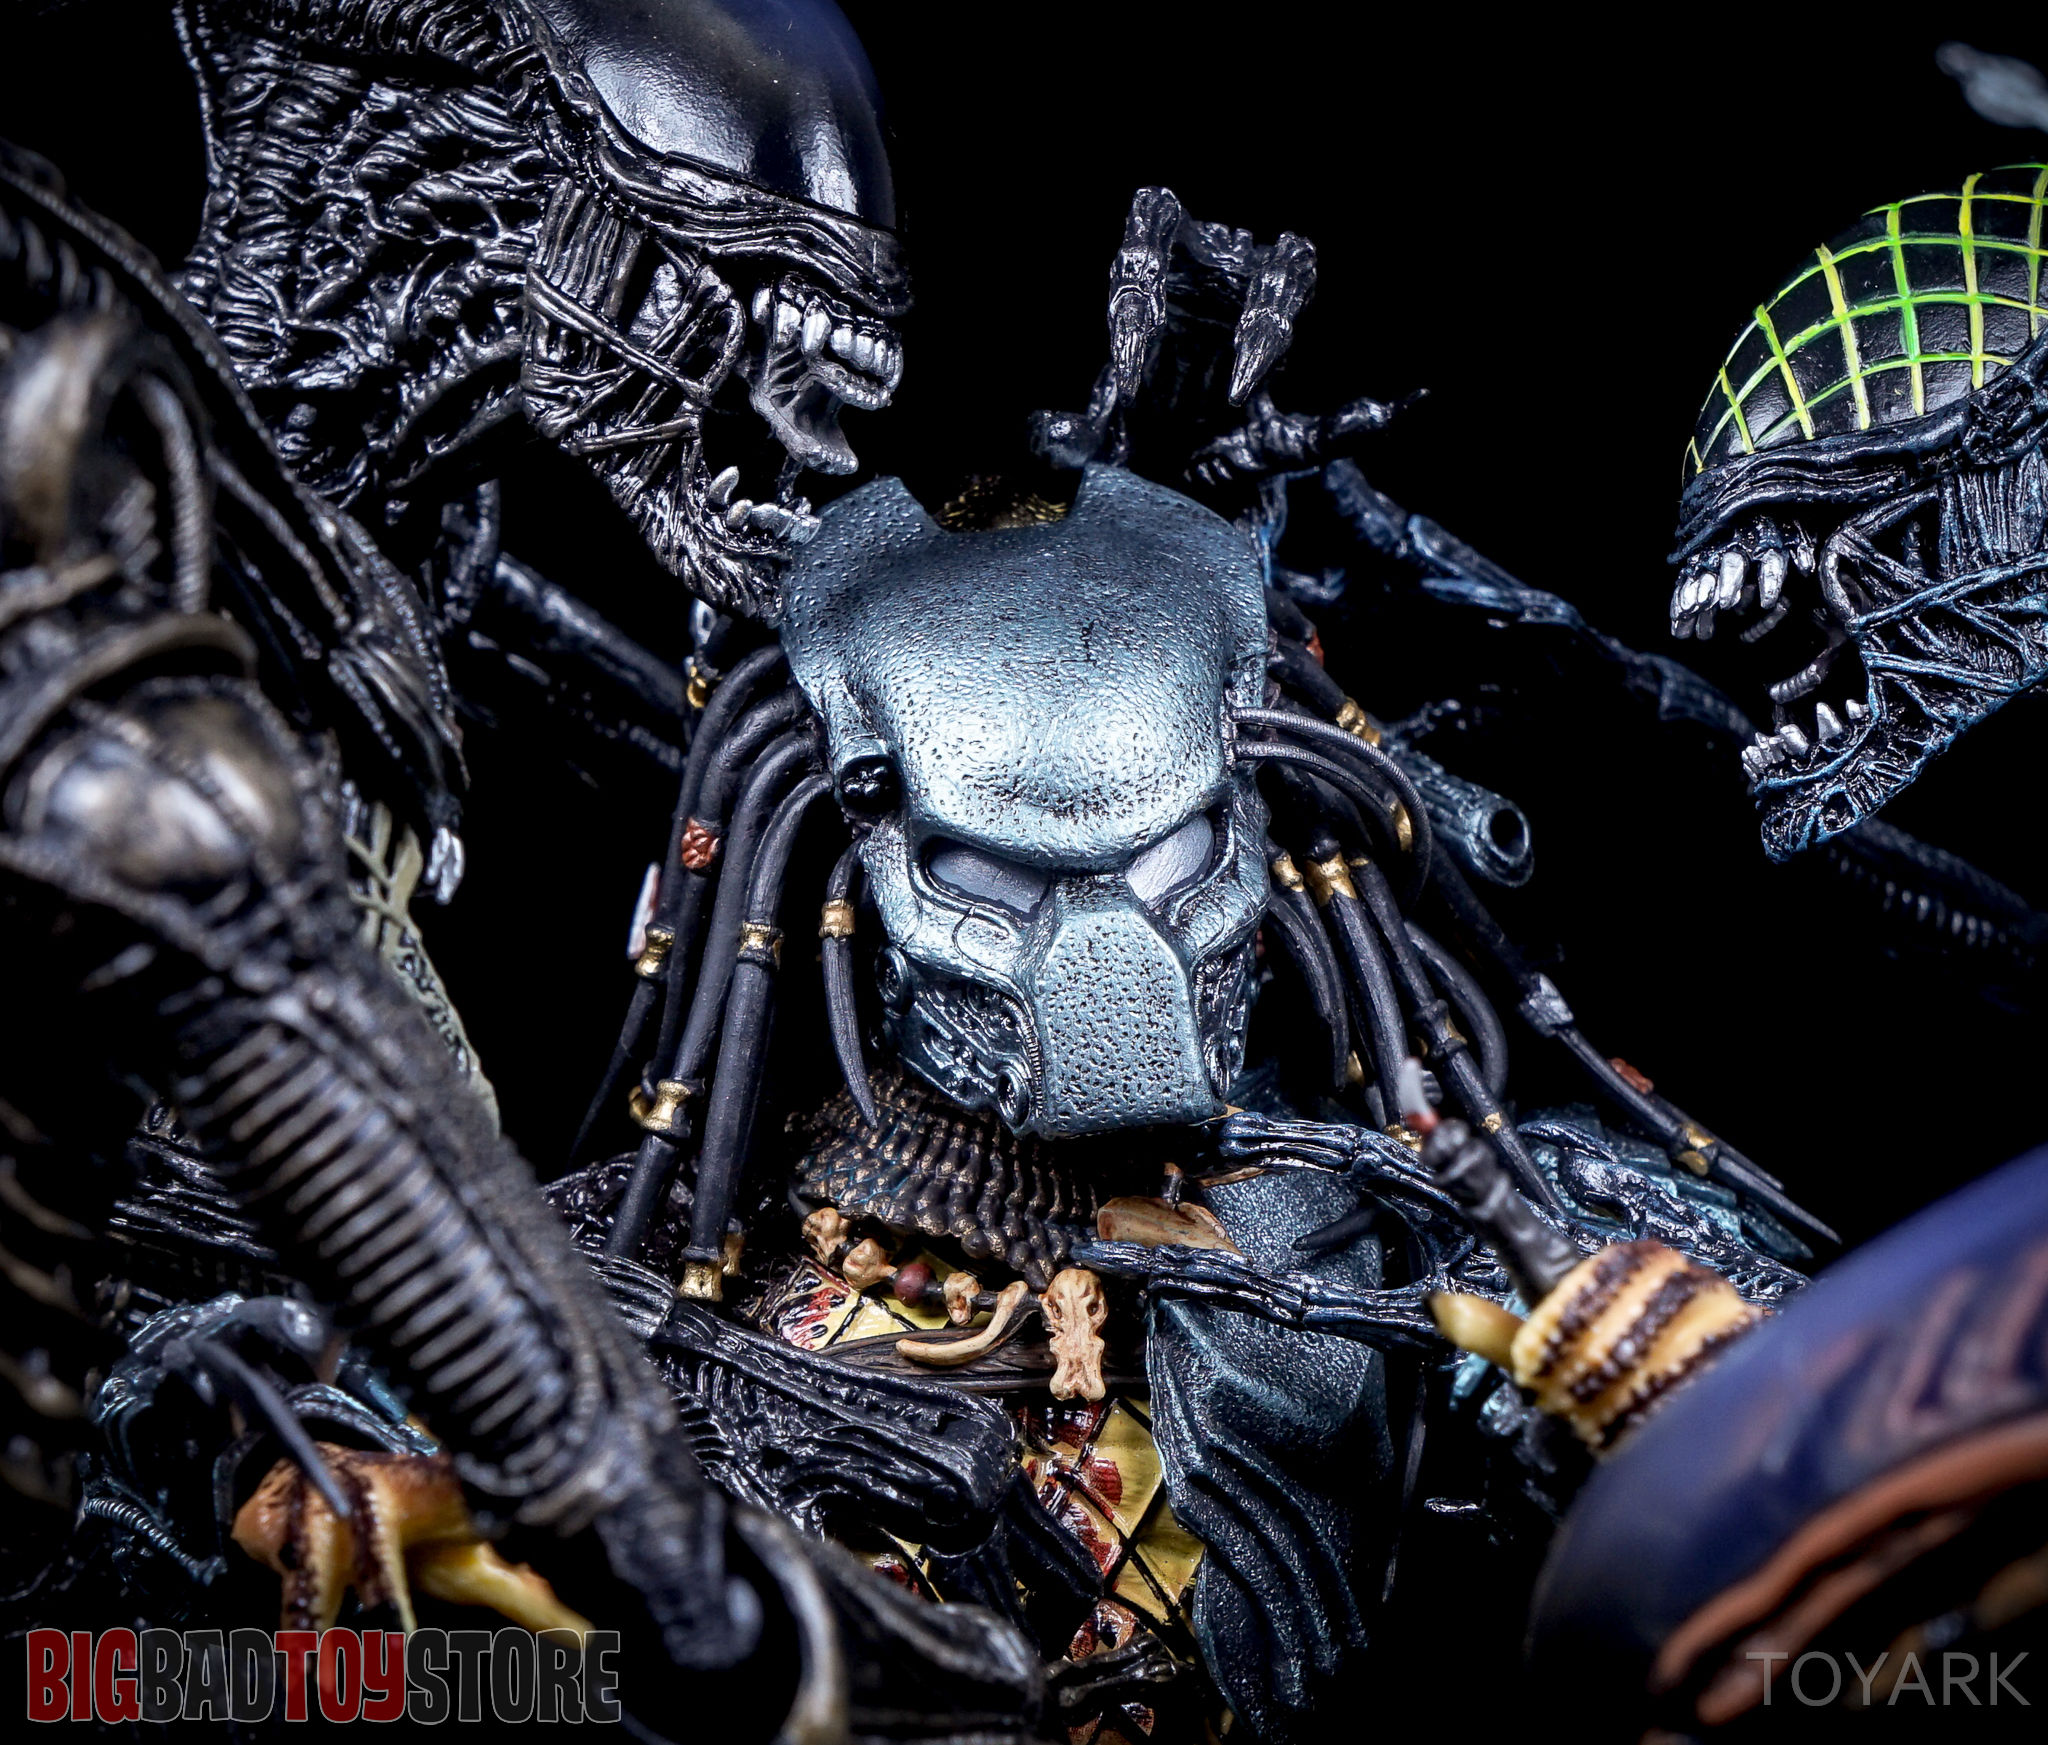 http://news.toyark.com/wp-content/uploads/sites/4/2016/05/NECA-Predator-Series-15-AvP-087.jpg